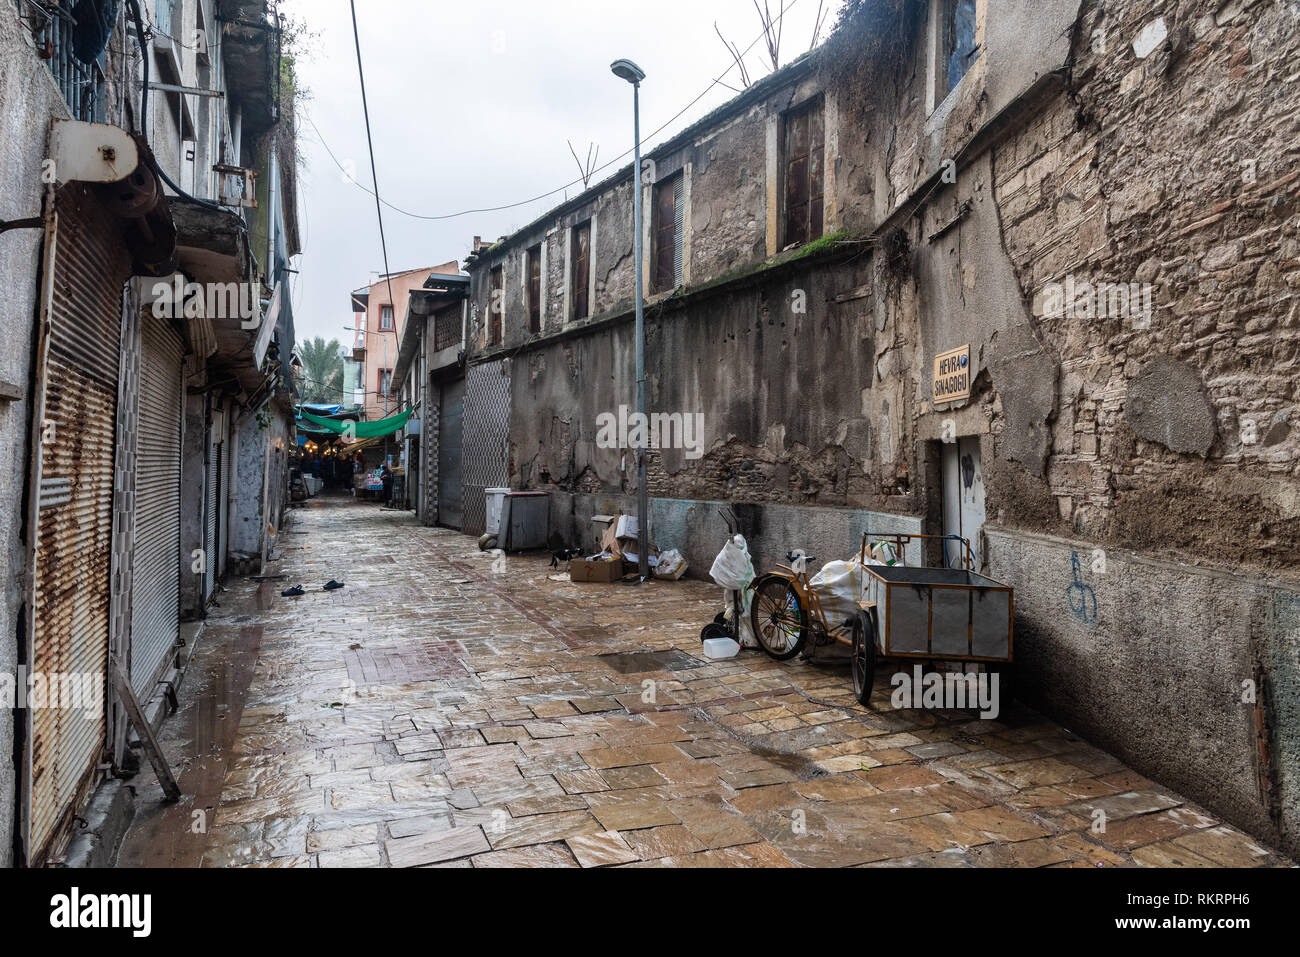 Izmir Turkey January 26 2019 Backstreet Of Kemeralti Market In Izmir With Hevra Synagogue And Commercial Properties Stock Photo Alamy